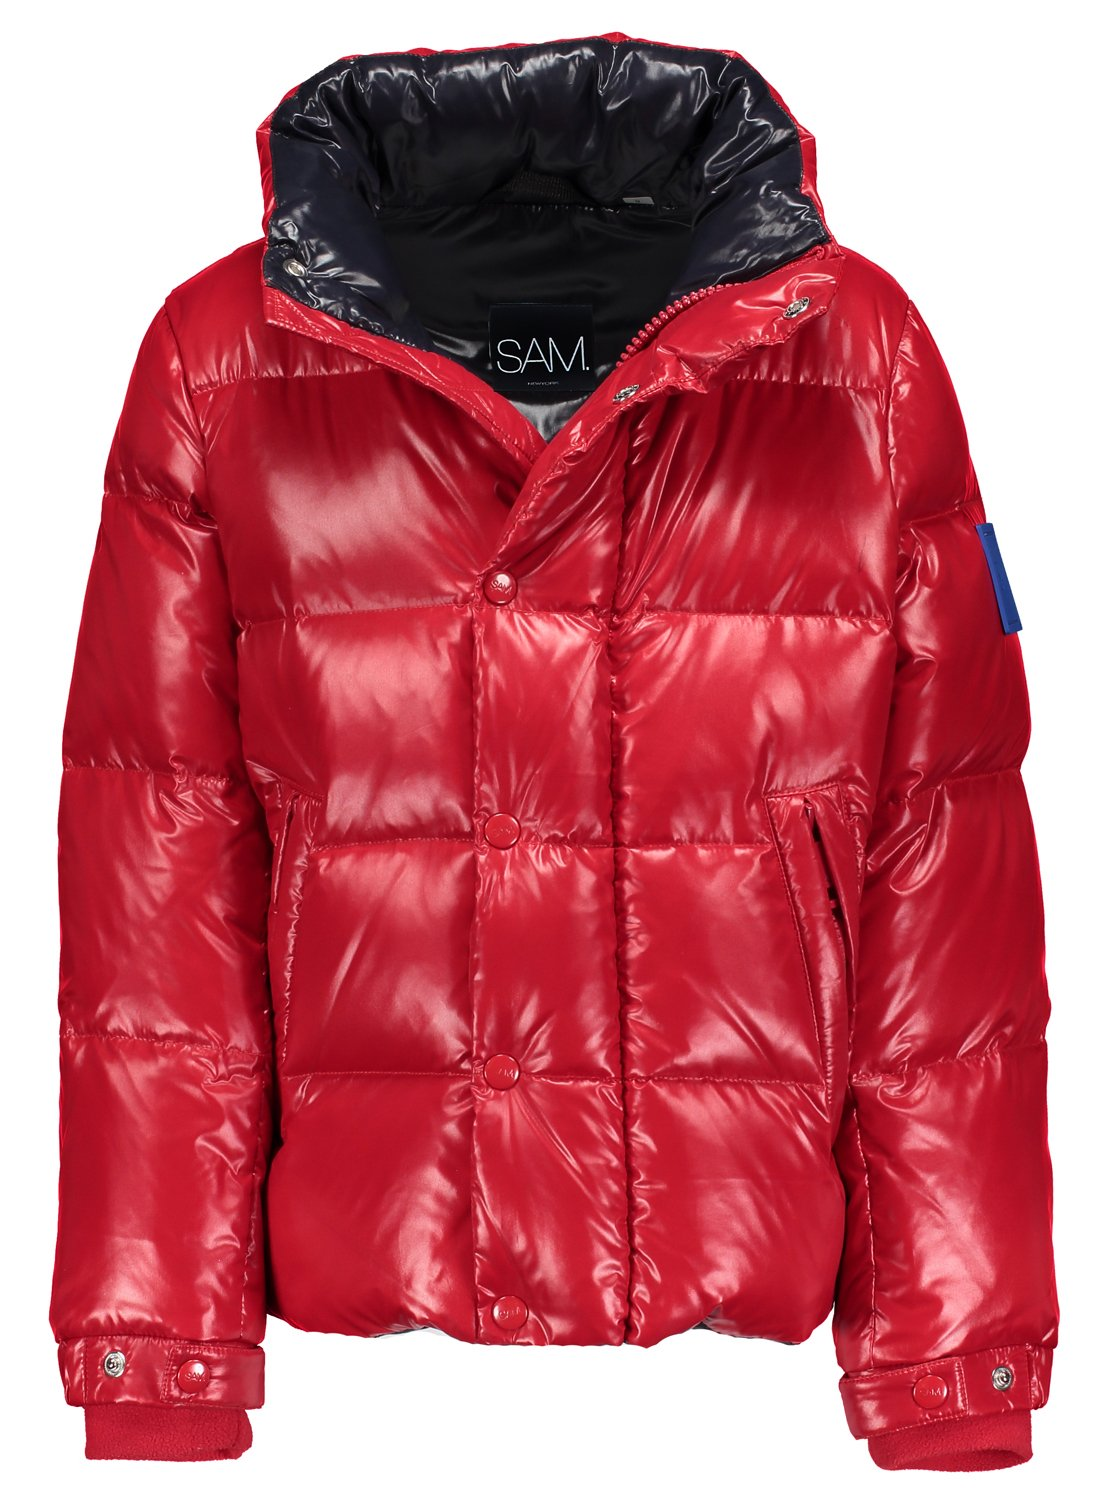 BOYS VAIL BOYS VAIL - SAM. New York Sam nyc jacket